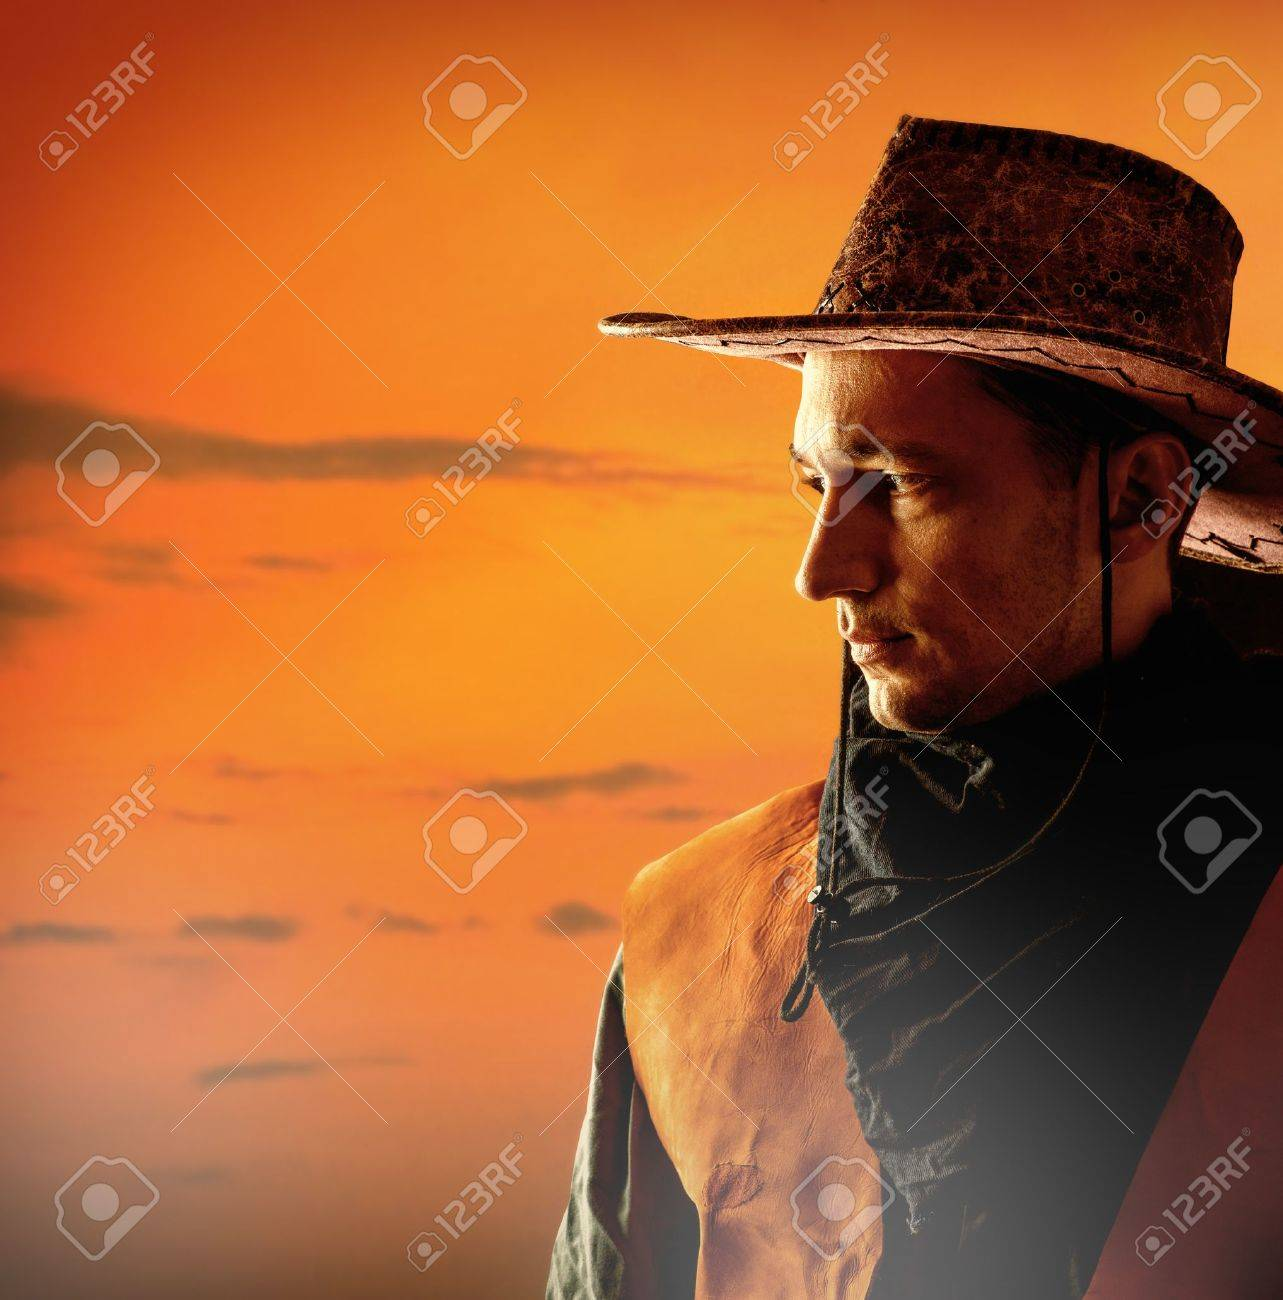 American cowboy in brown hat on a sunset background outdoor Stock Photo - 21622510